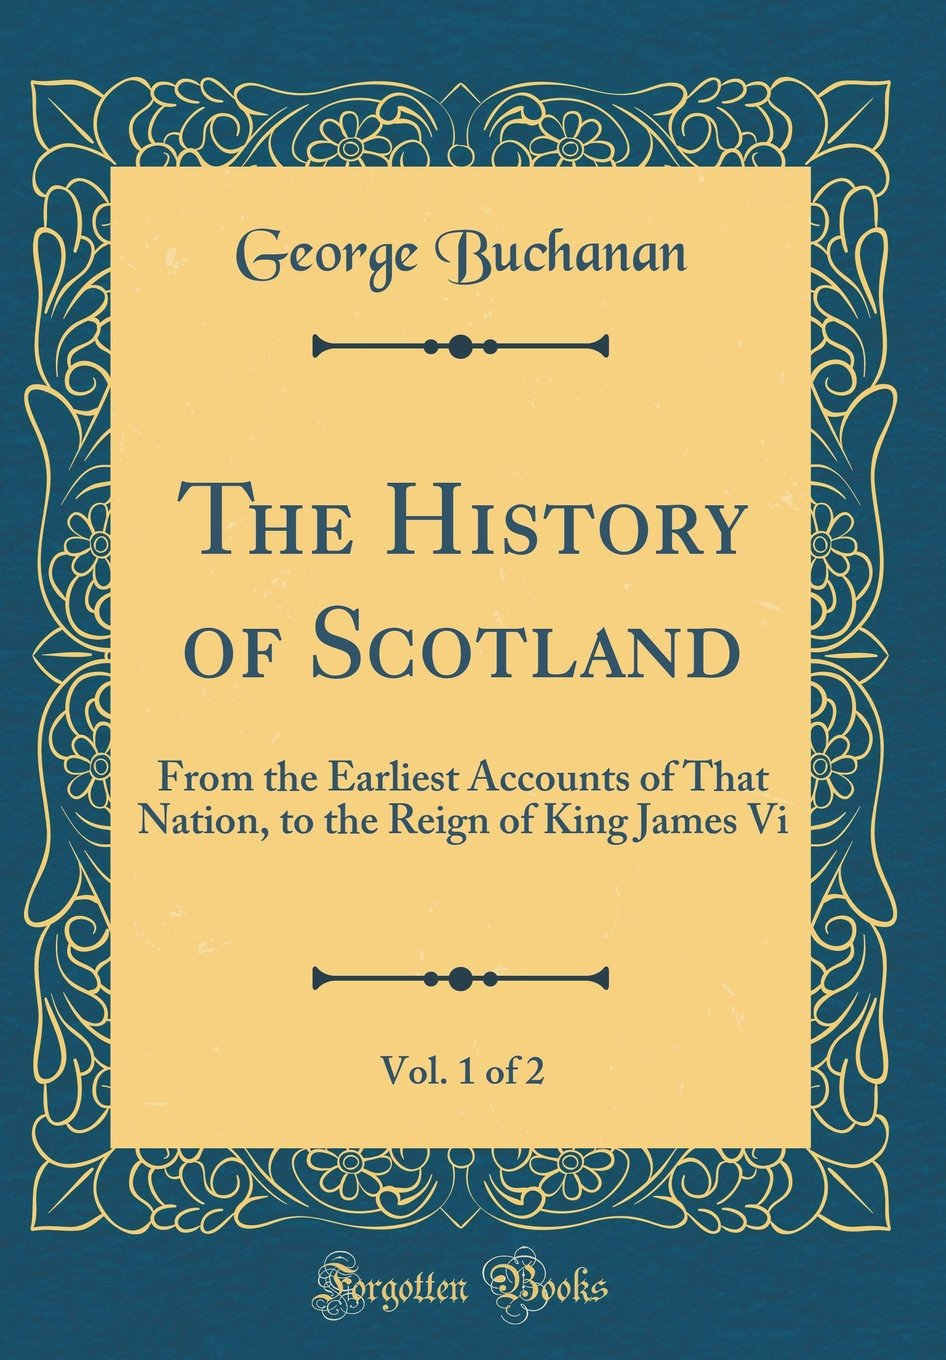 The History of Scotland, Vol. 1 of 2: From the Earliest Accounts of That Nation, to the Reign of King James Vi (Classic Reprint) ebook